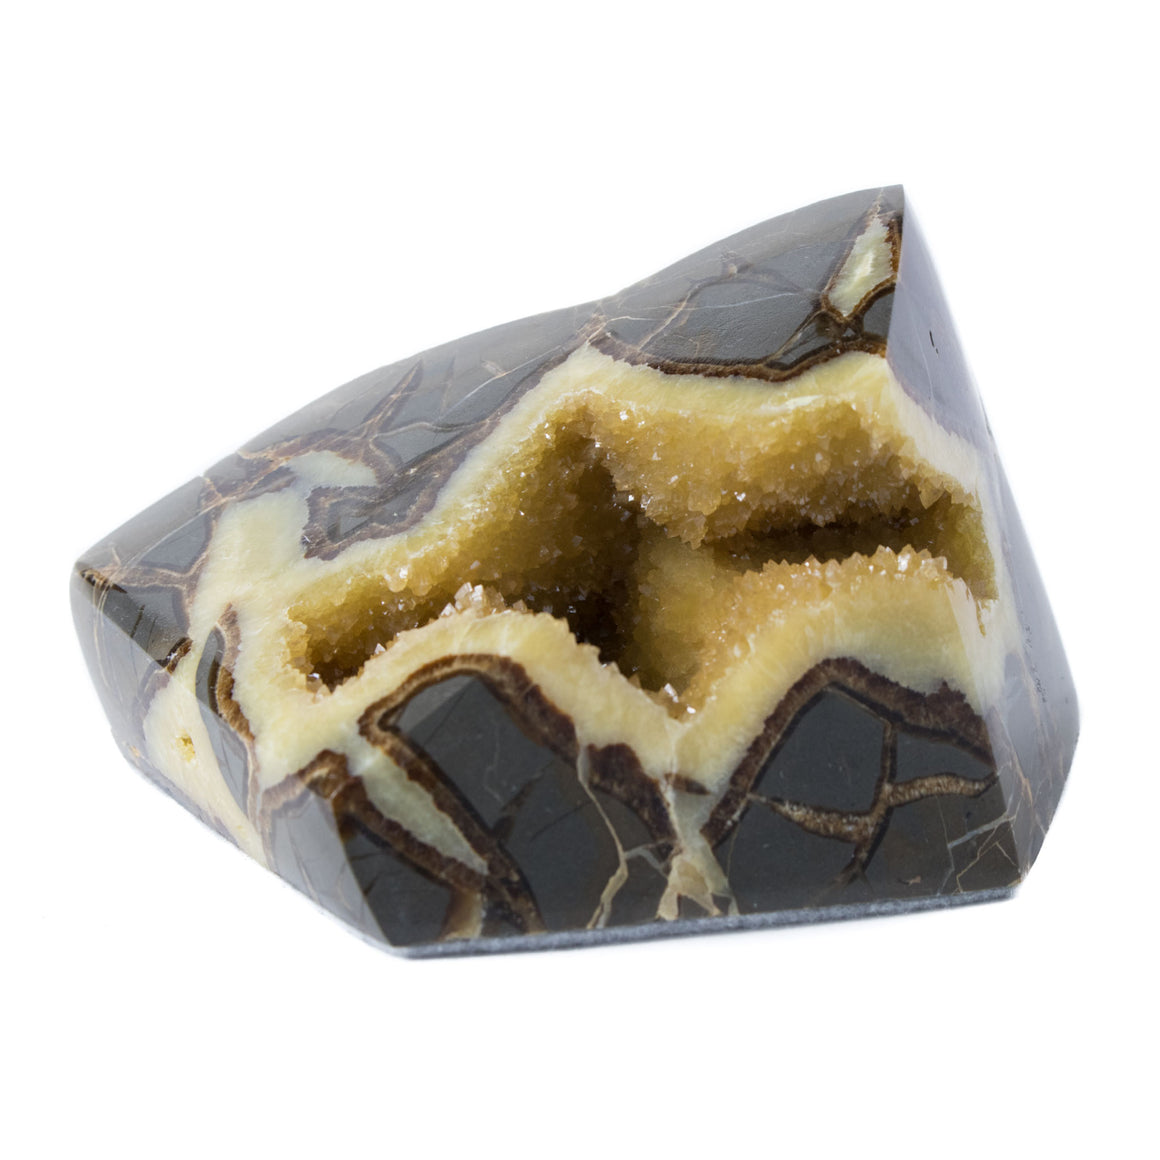 Septarian Concretion Geode, Golden Calcite Crystals